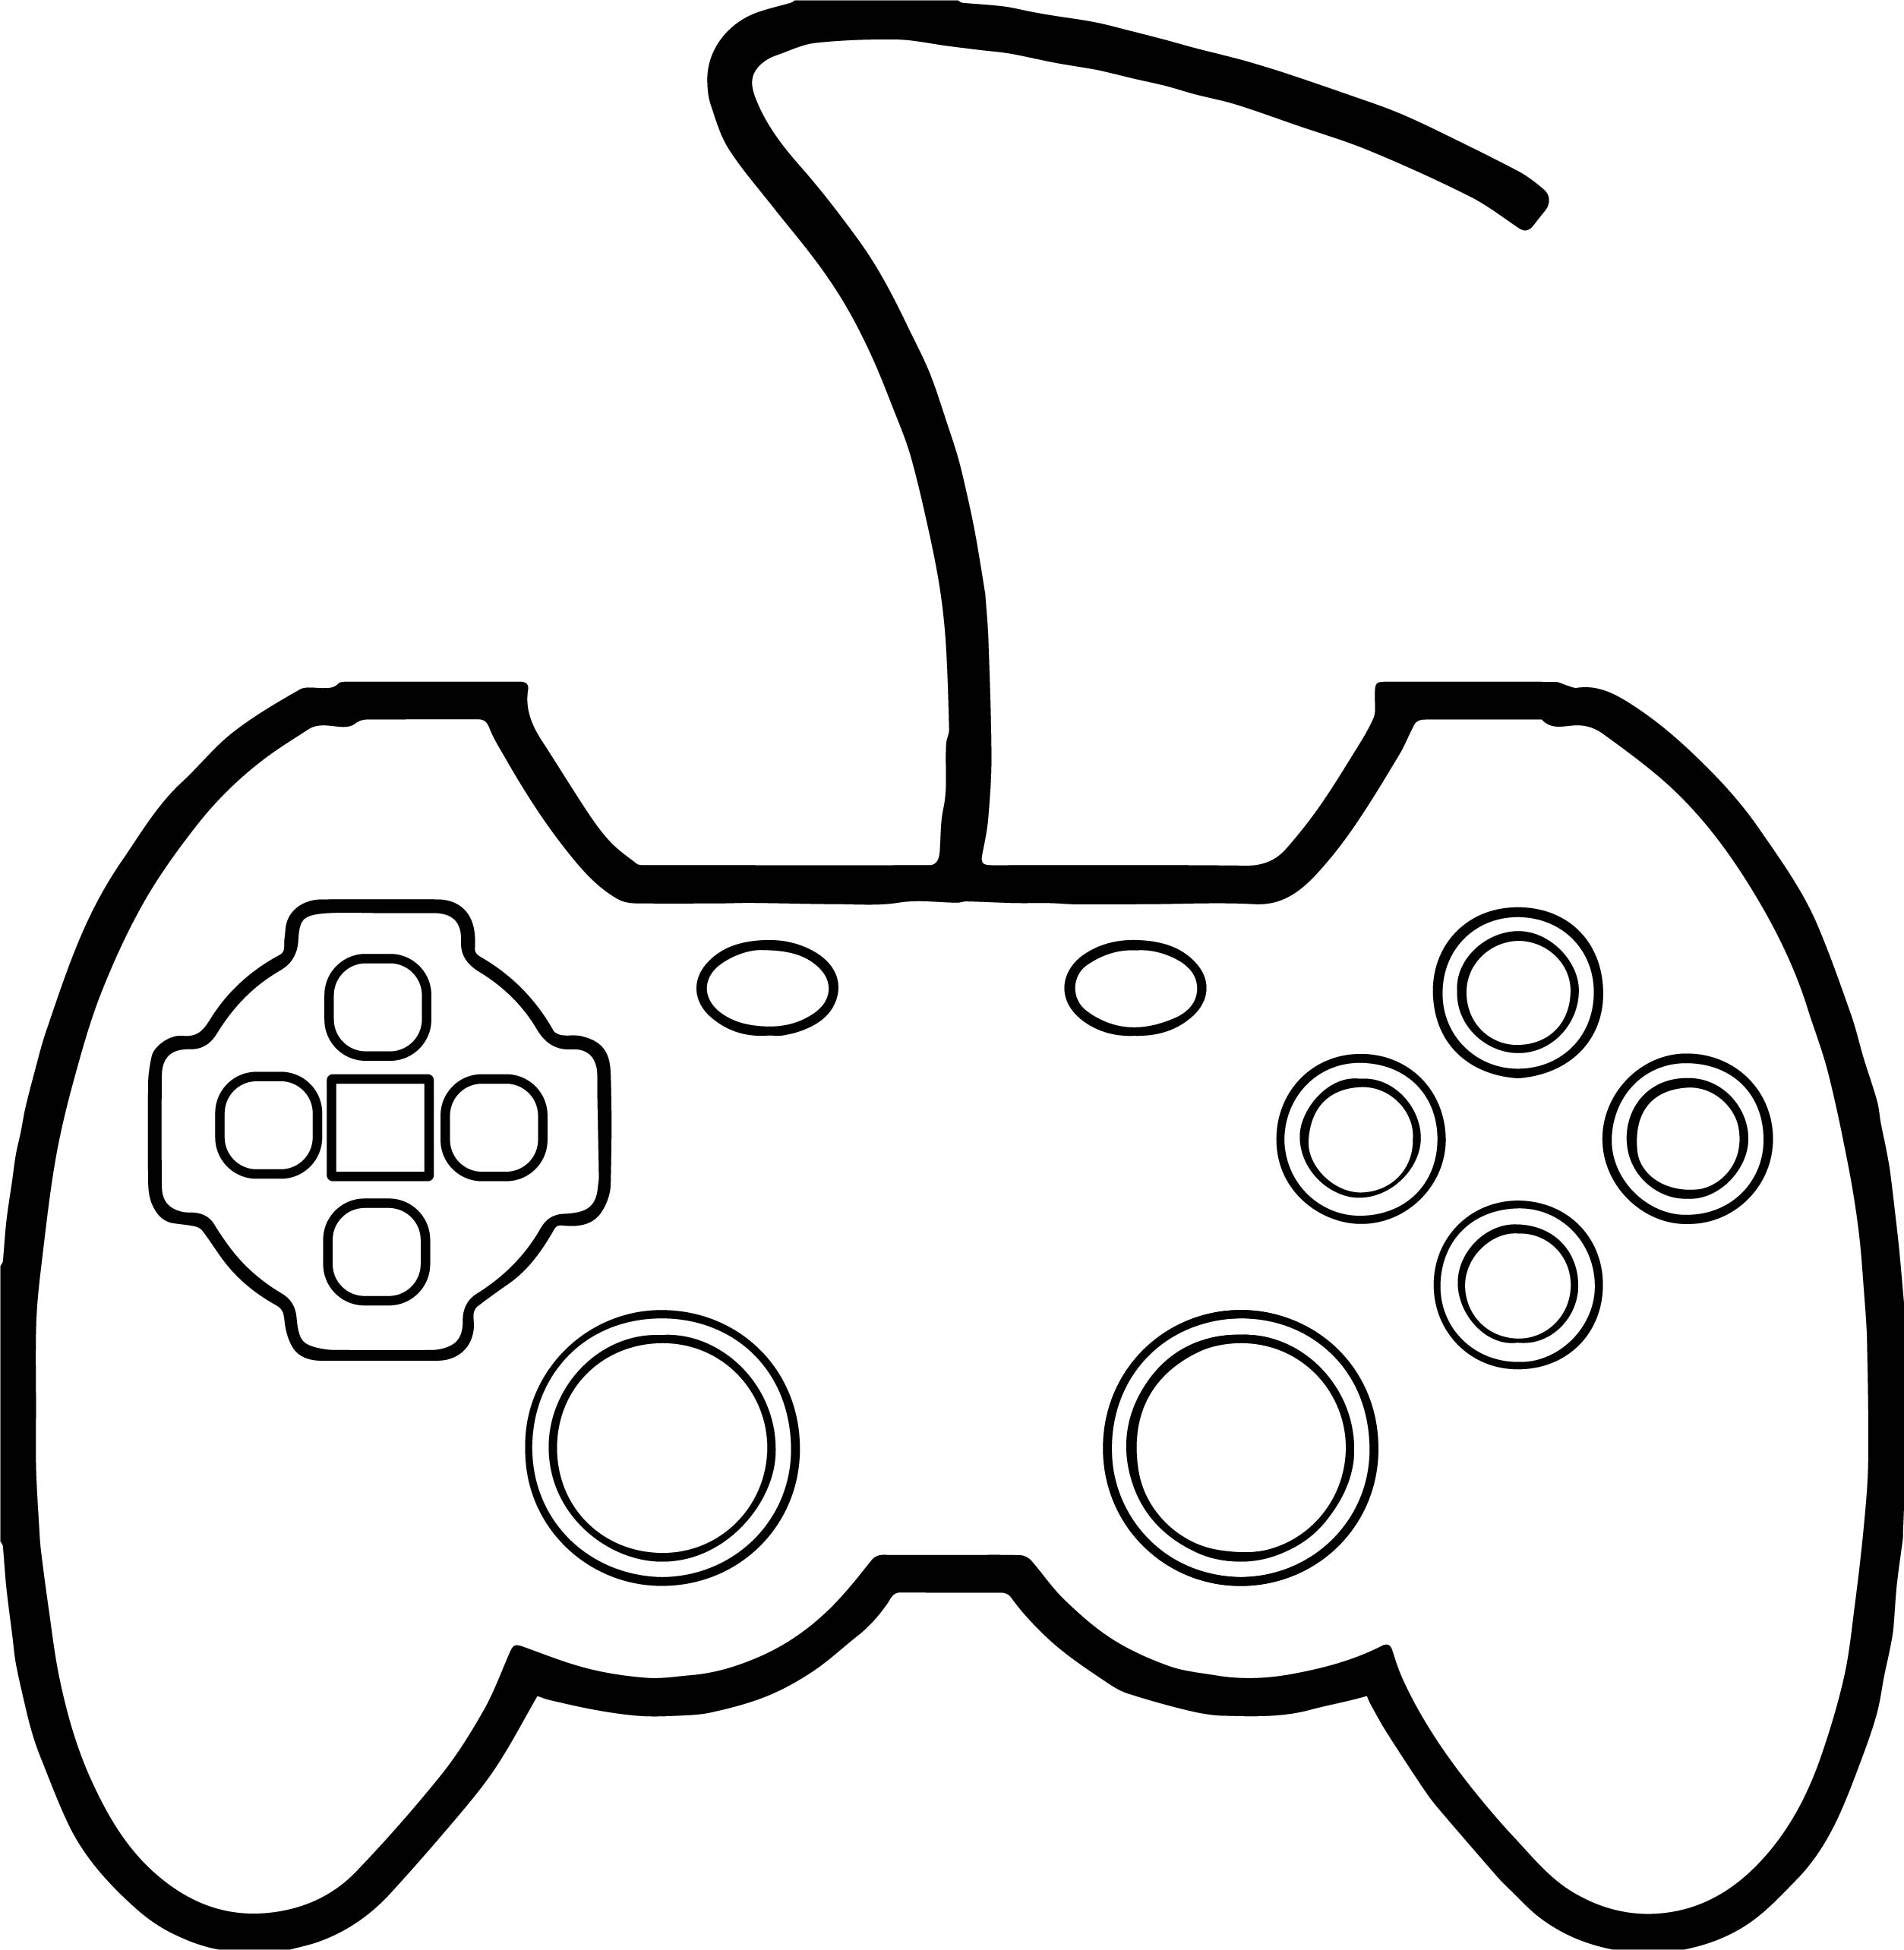 Joypad The Mad Processor Playing Computer Games Coloring Page